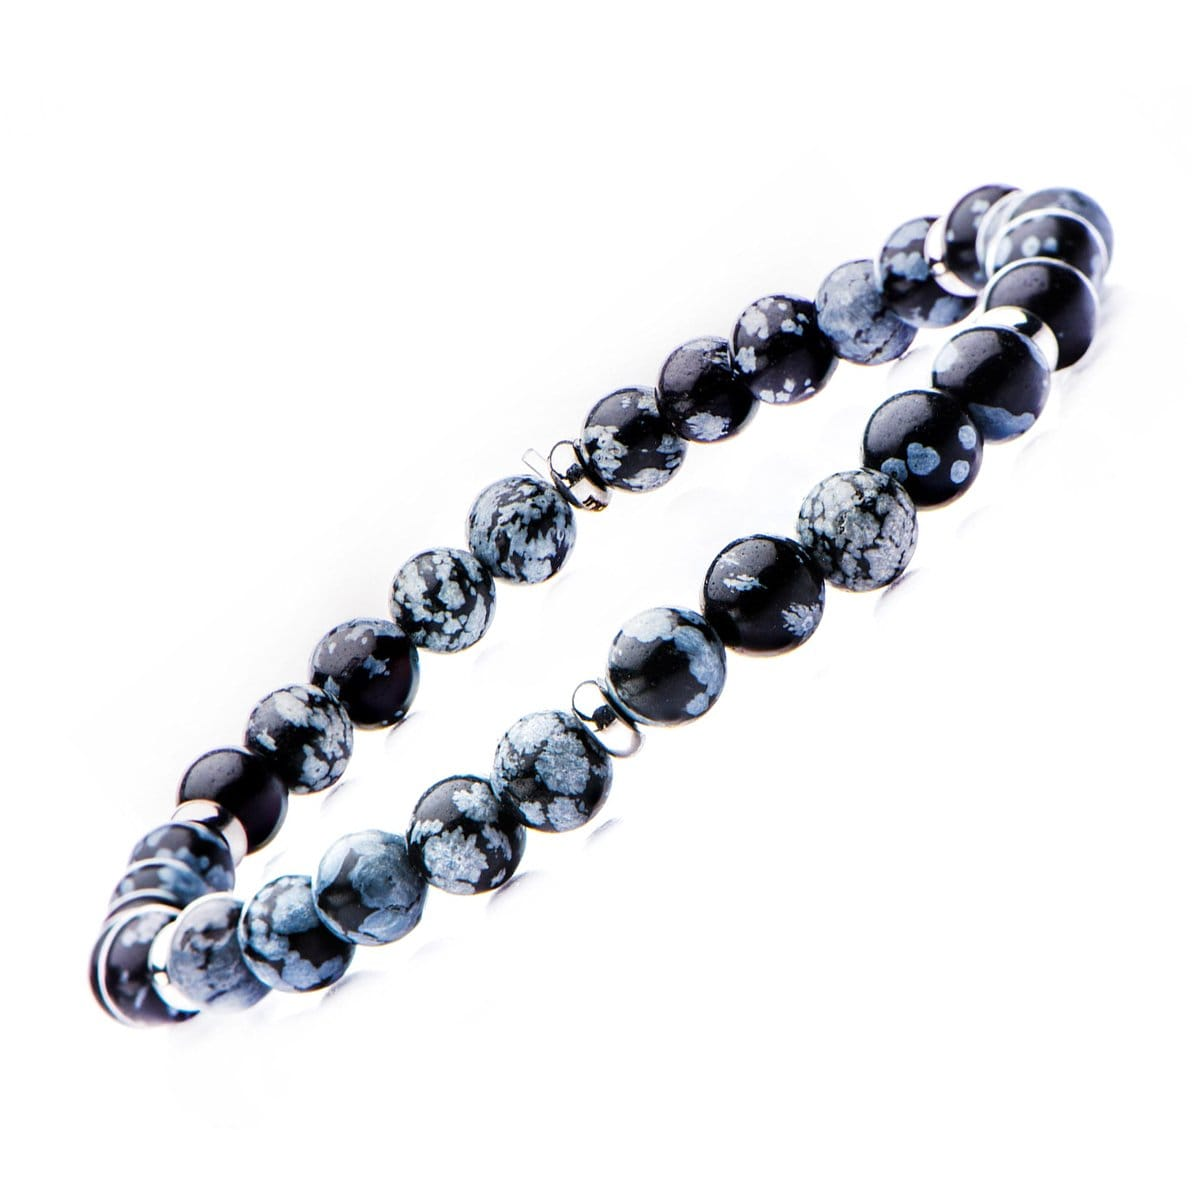 Silver Stainless Steel with Blue Snowflake Stone 6mm Bead Stackable Bracelet